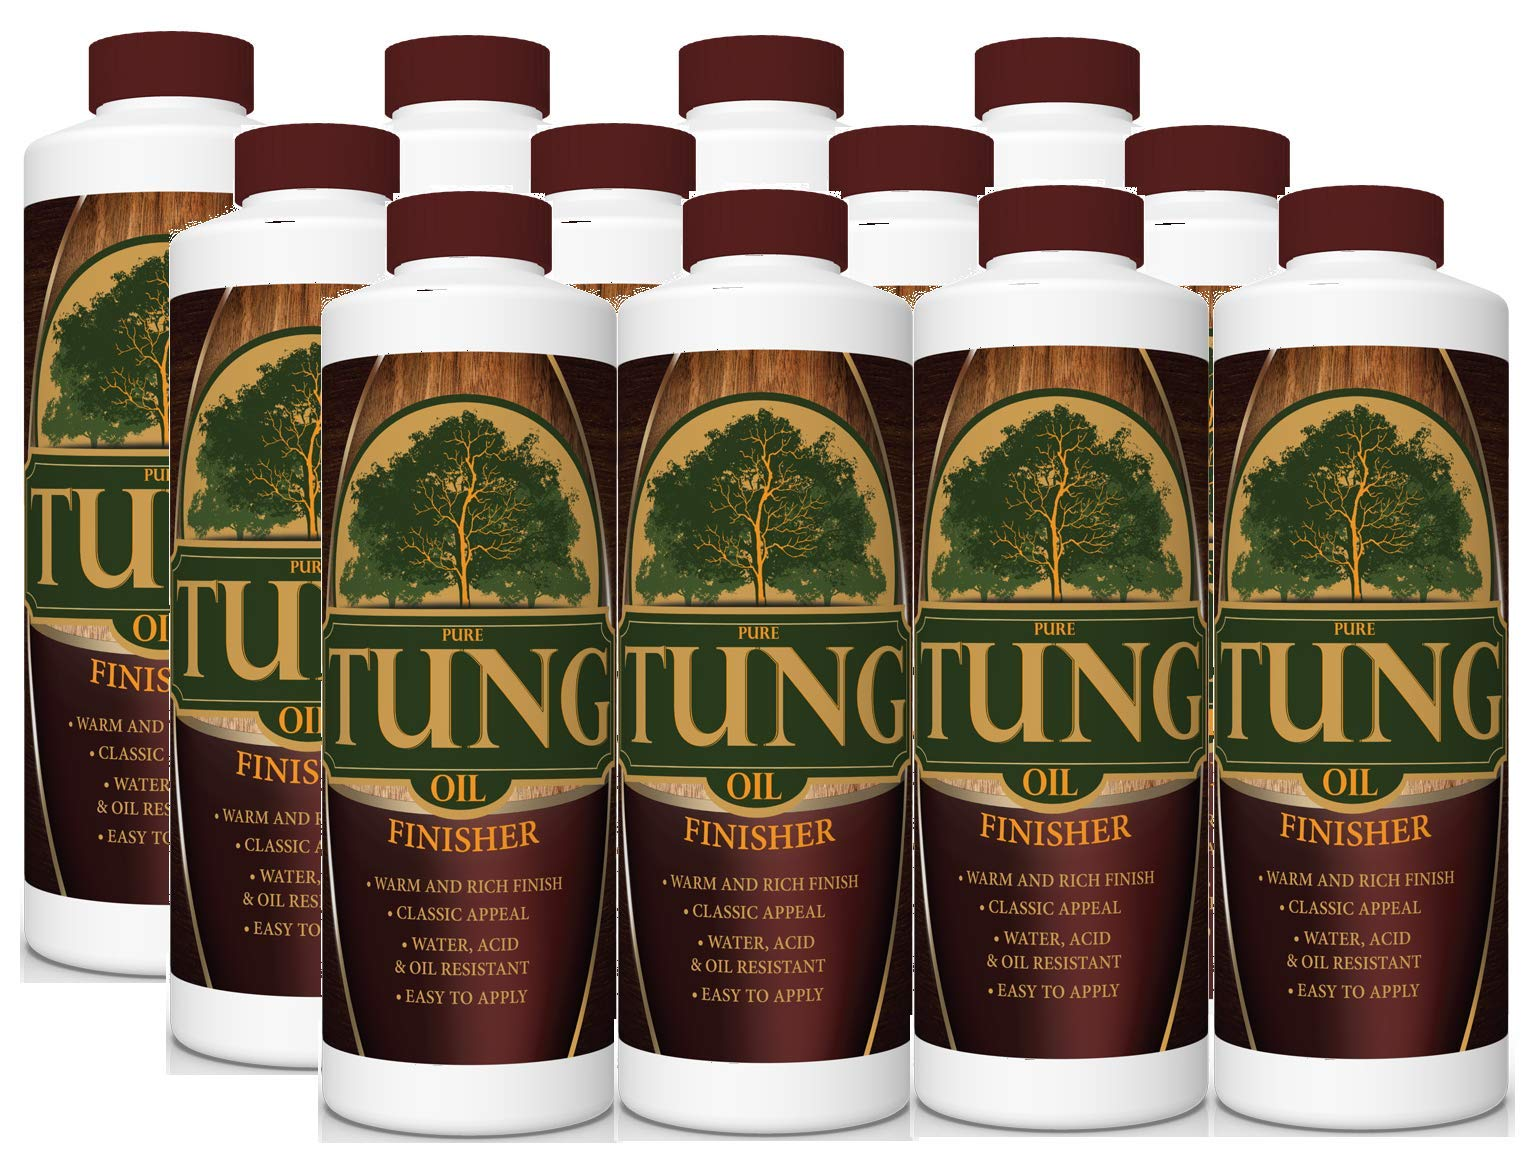 100% Pure Tung Oil Finish Wood Stain & Natural Sealer for All Types of Wood (12 x 32 oz Case)